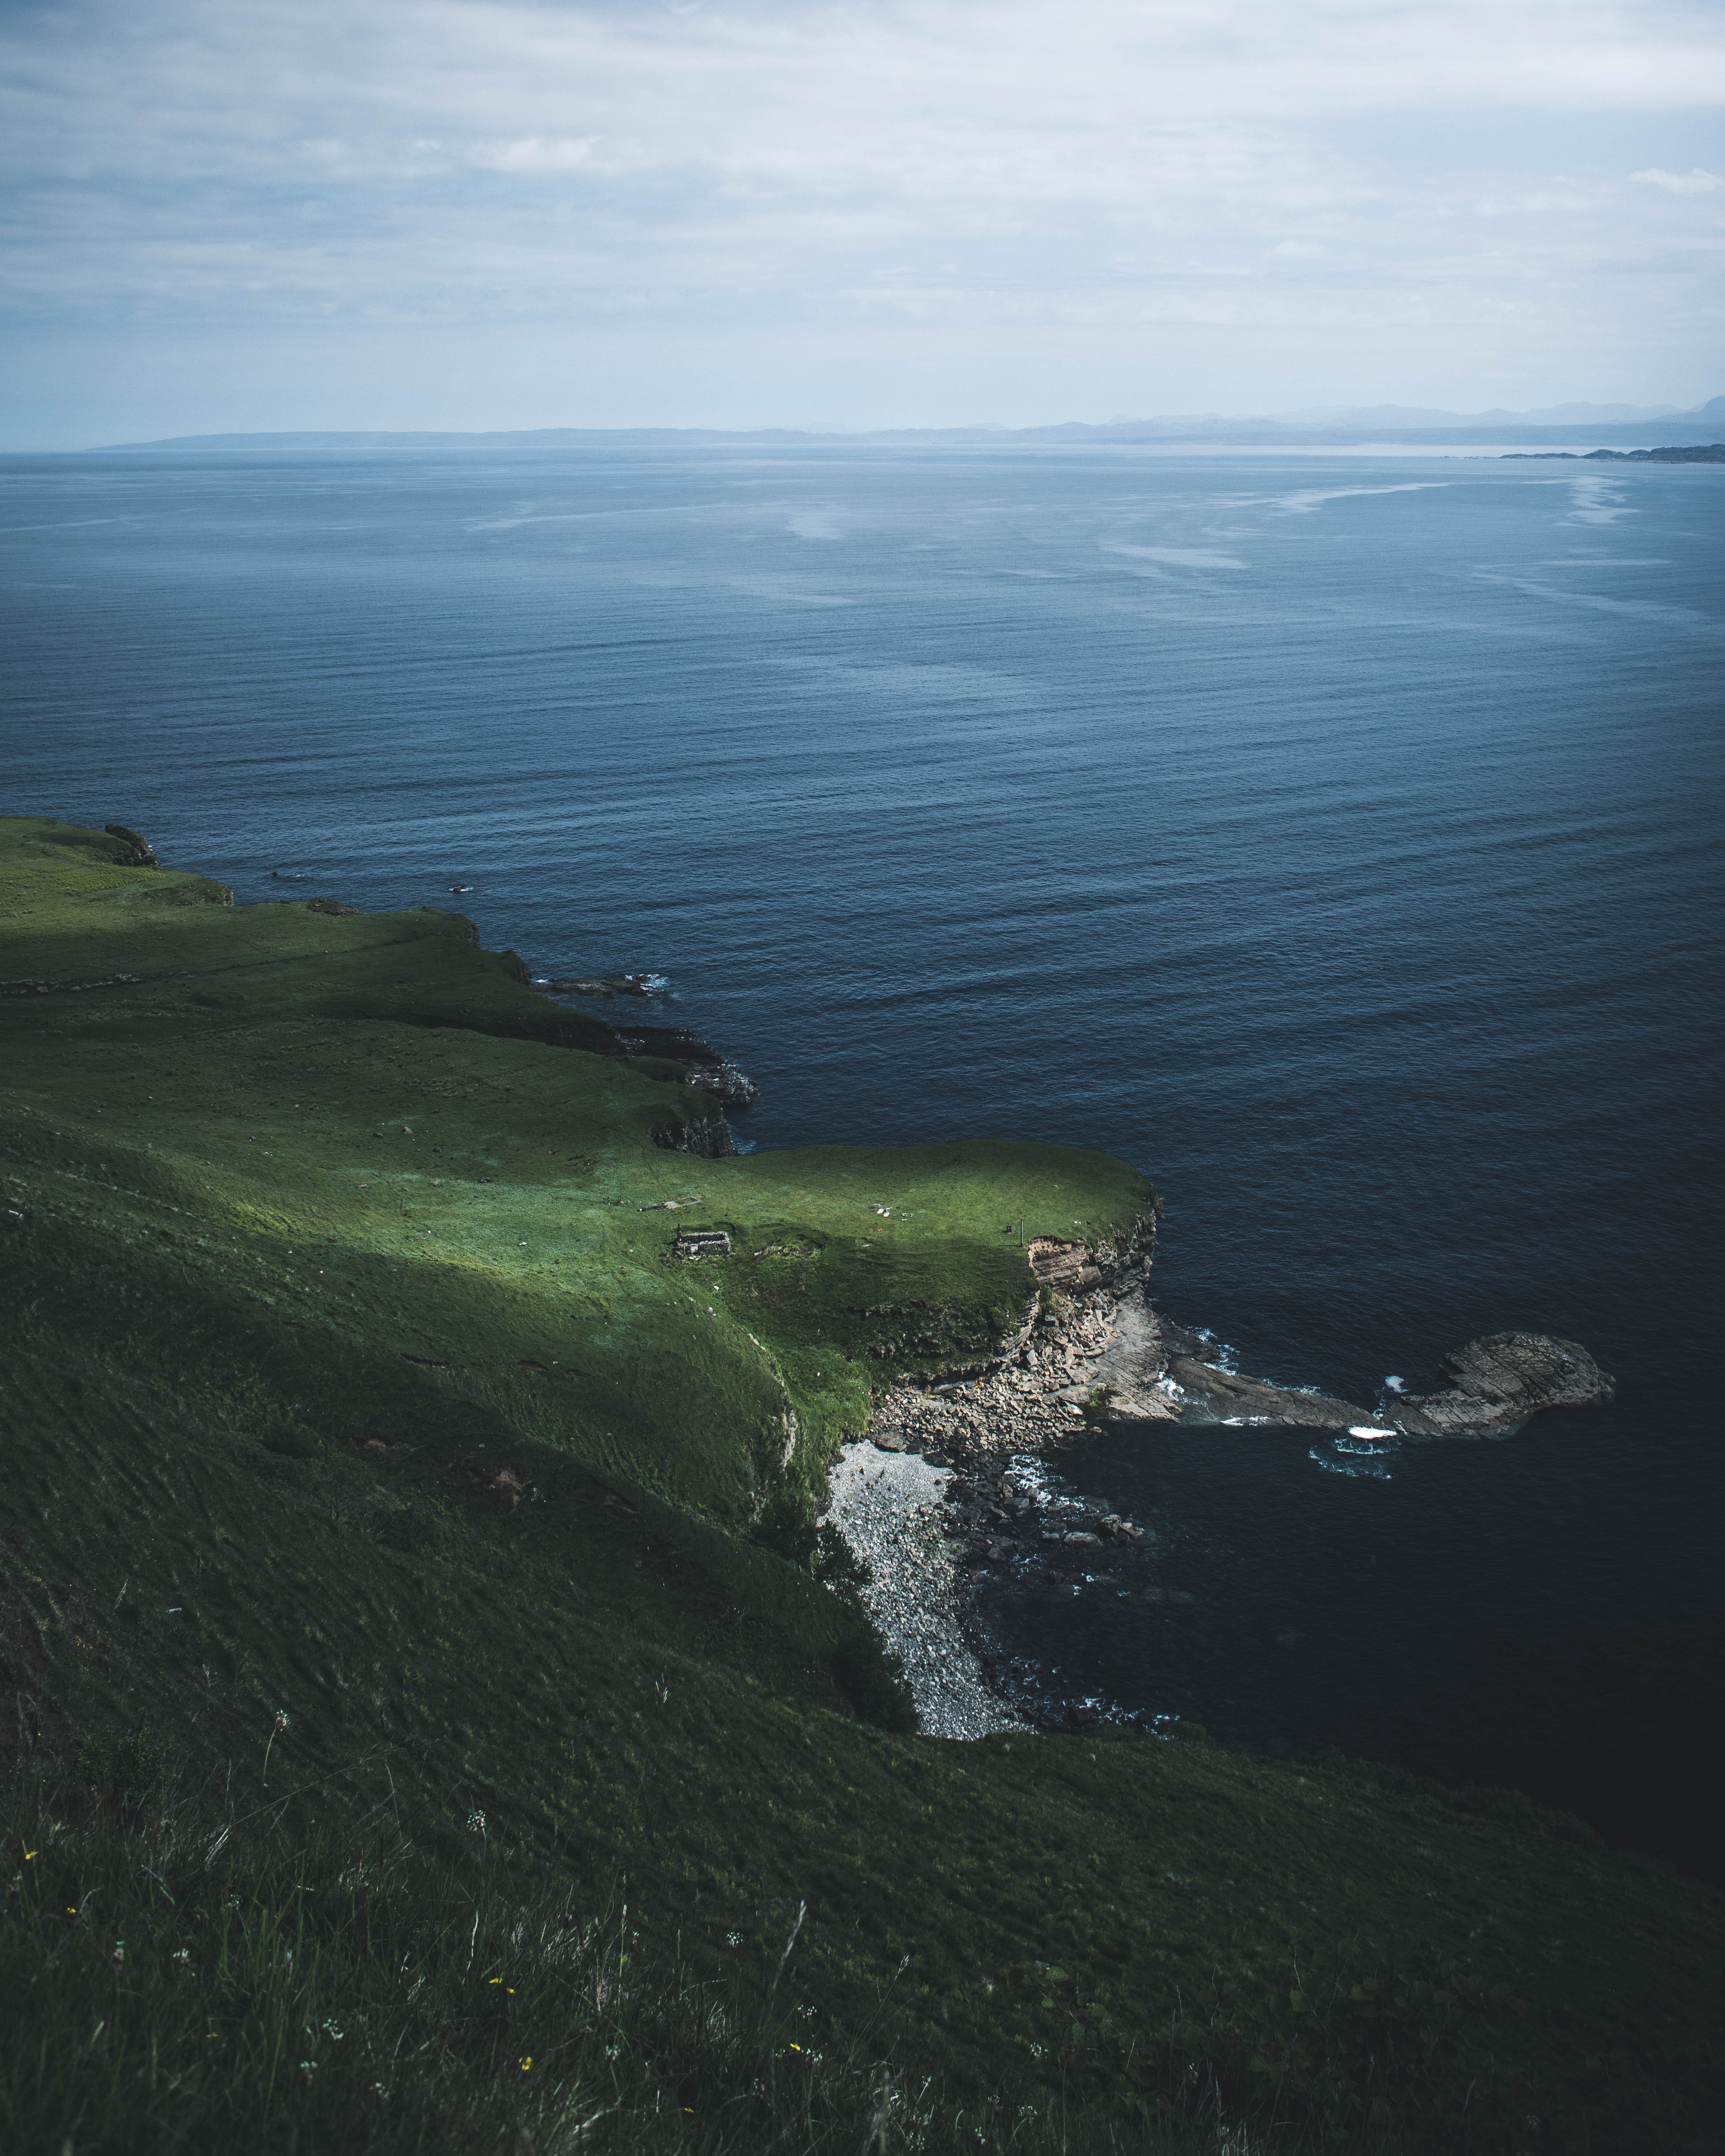 aerial photography of body of water near green land